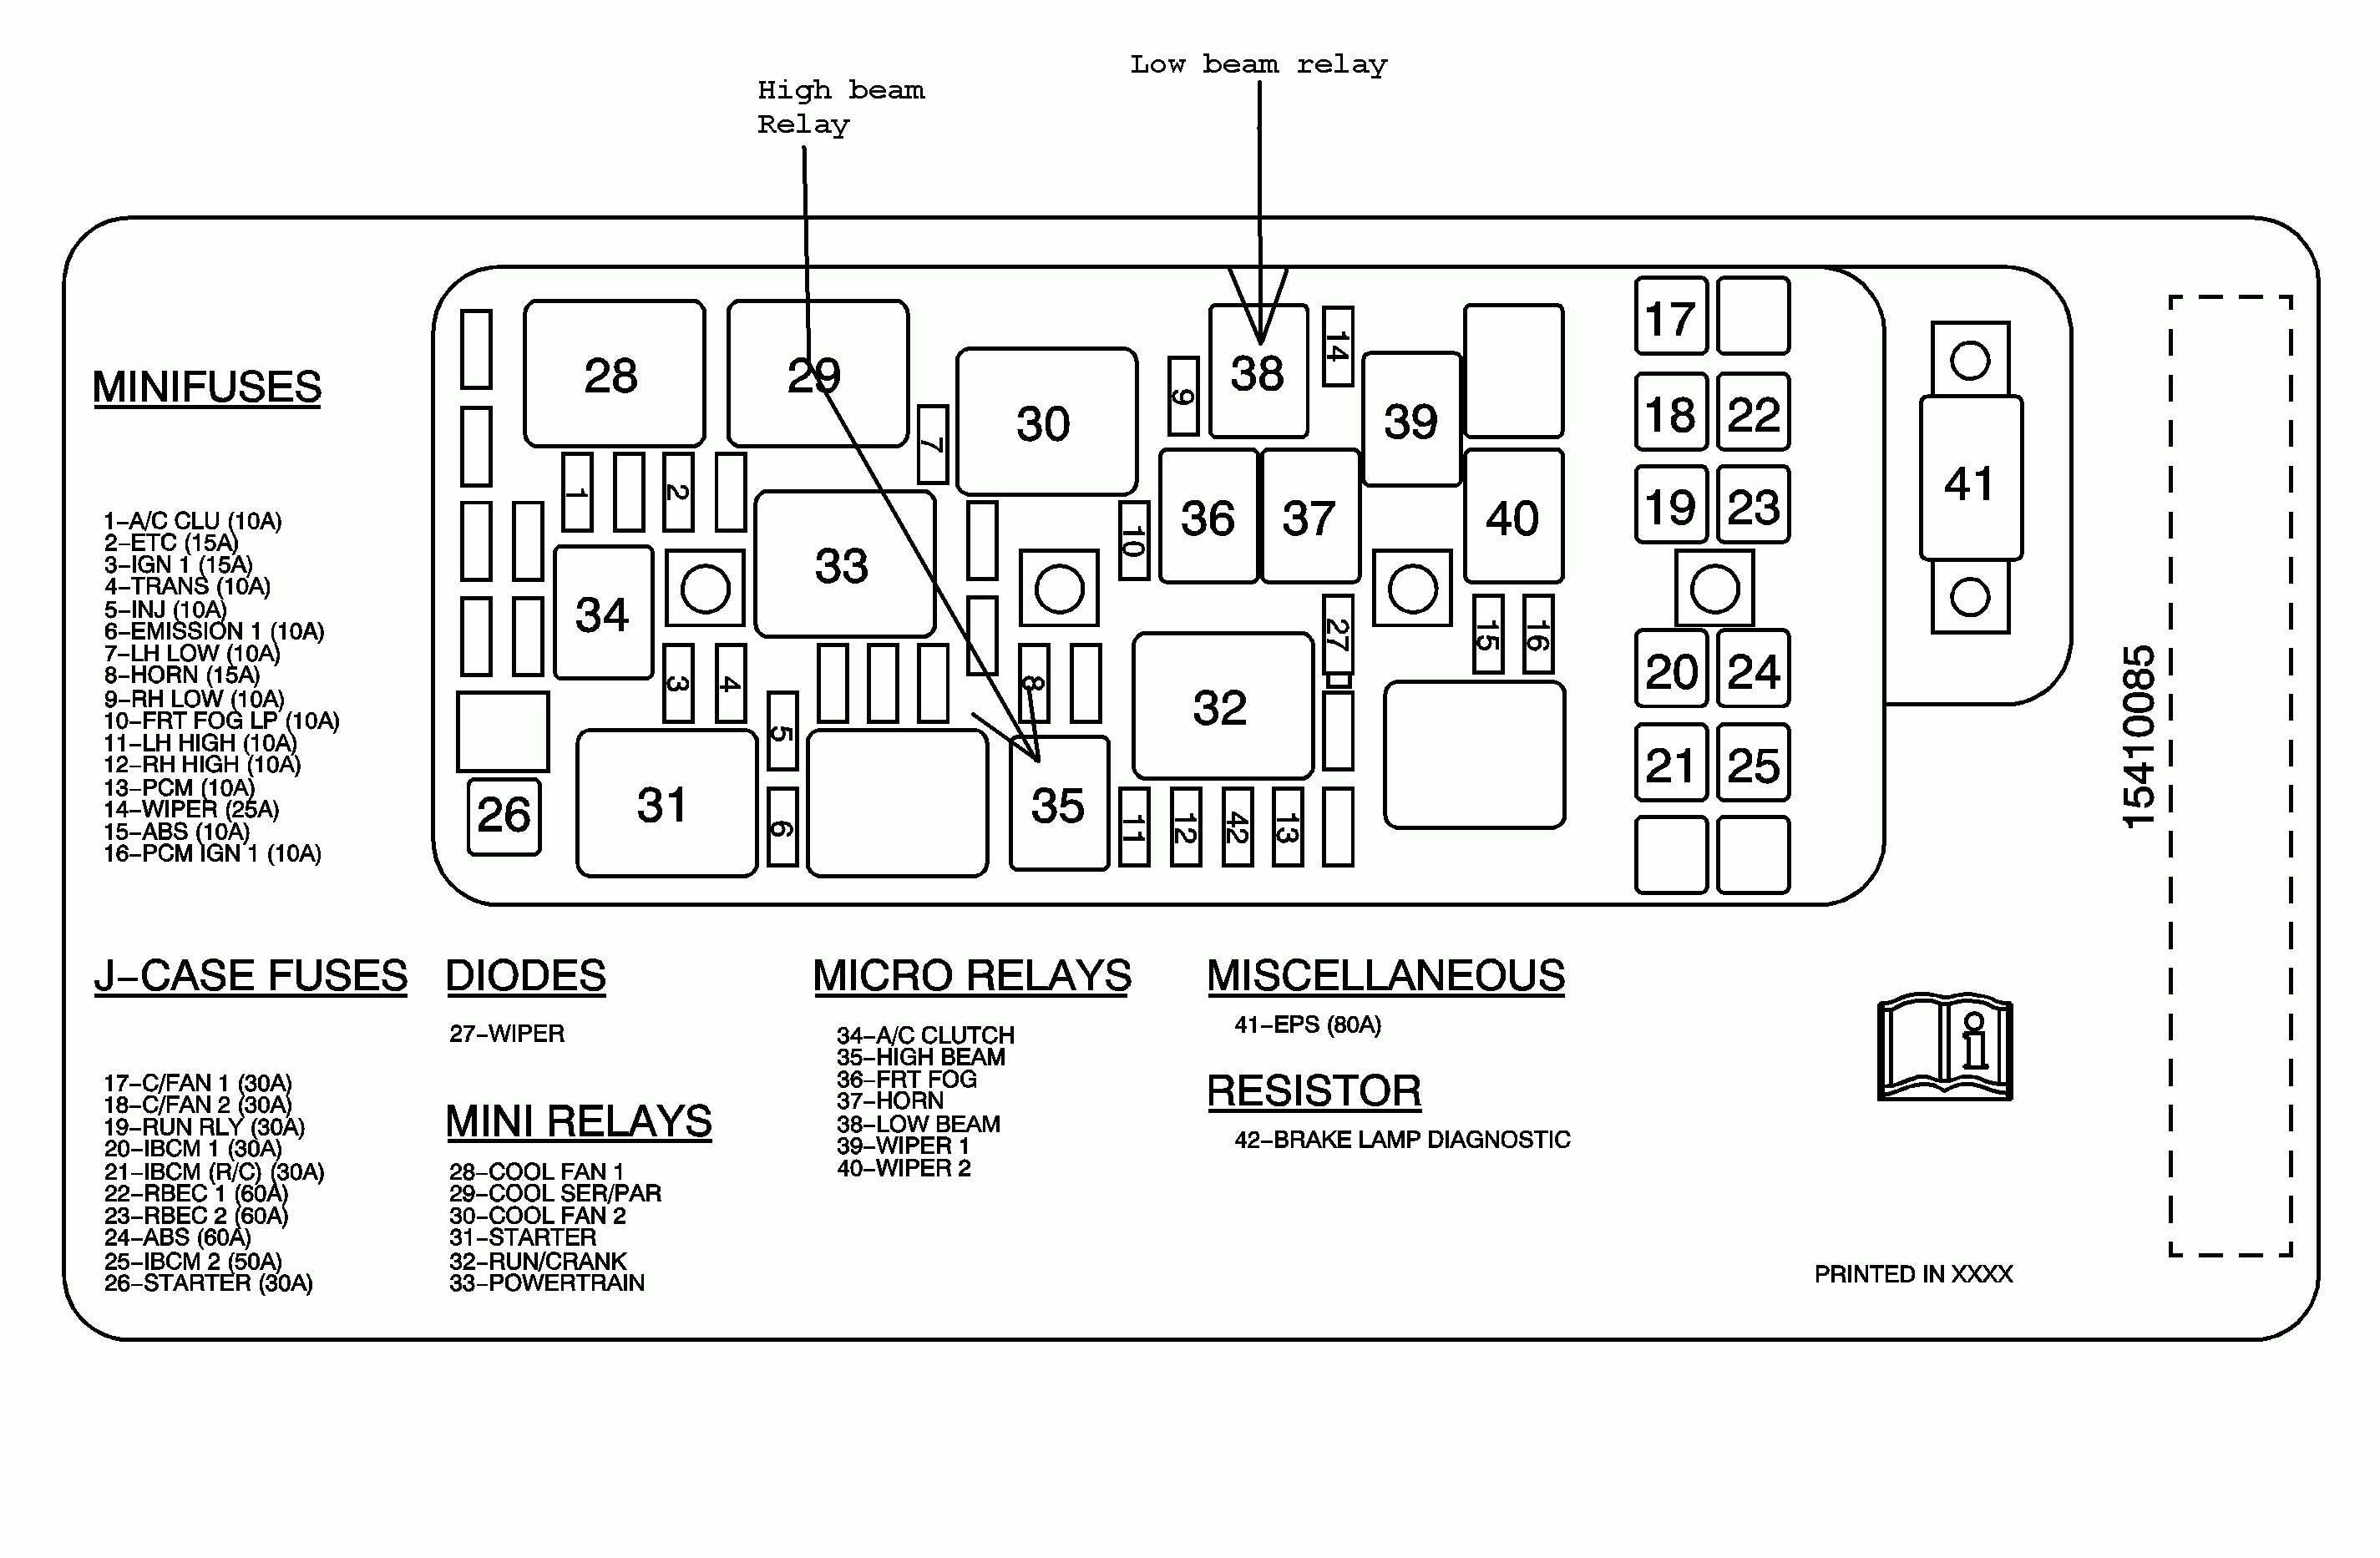 DIAGRAM] 2010 Chevy Colorado Radio Wiring Diagram FULL Version HD Quality Wiring  Diagram - VORONOIDIAGRAM.VAGALUME.FRwiring diagram - vagalume.fr